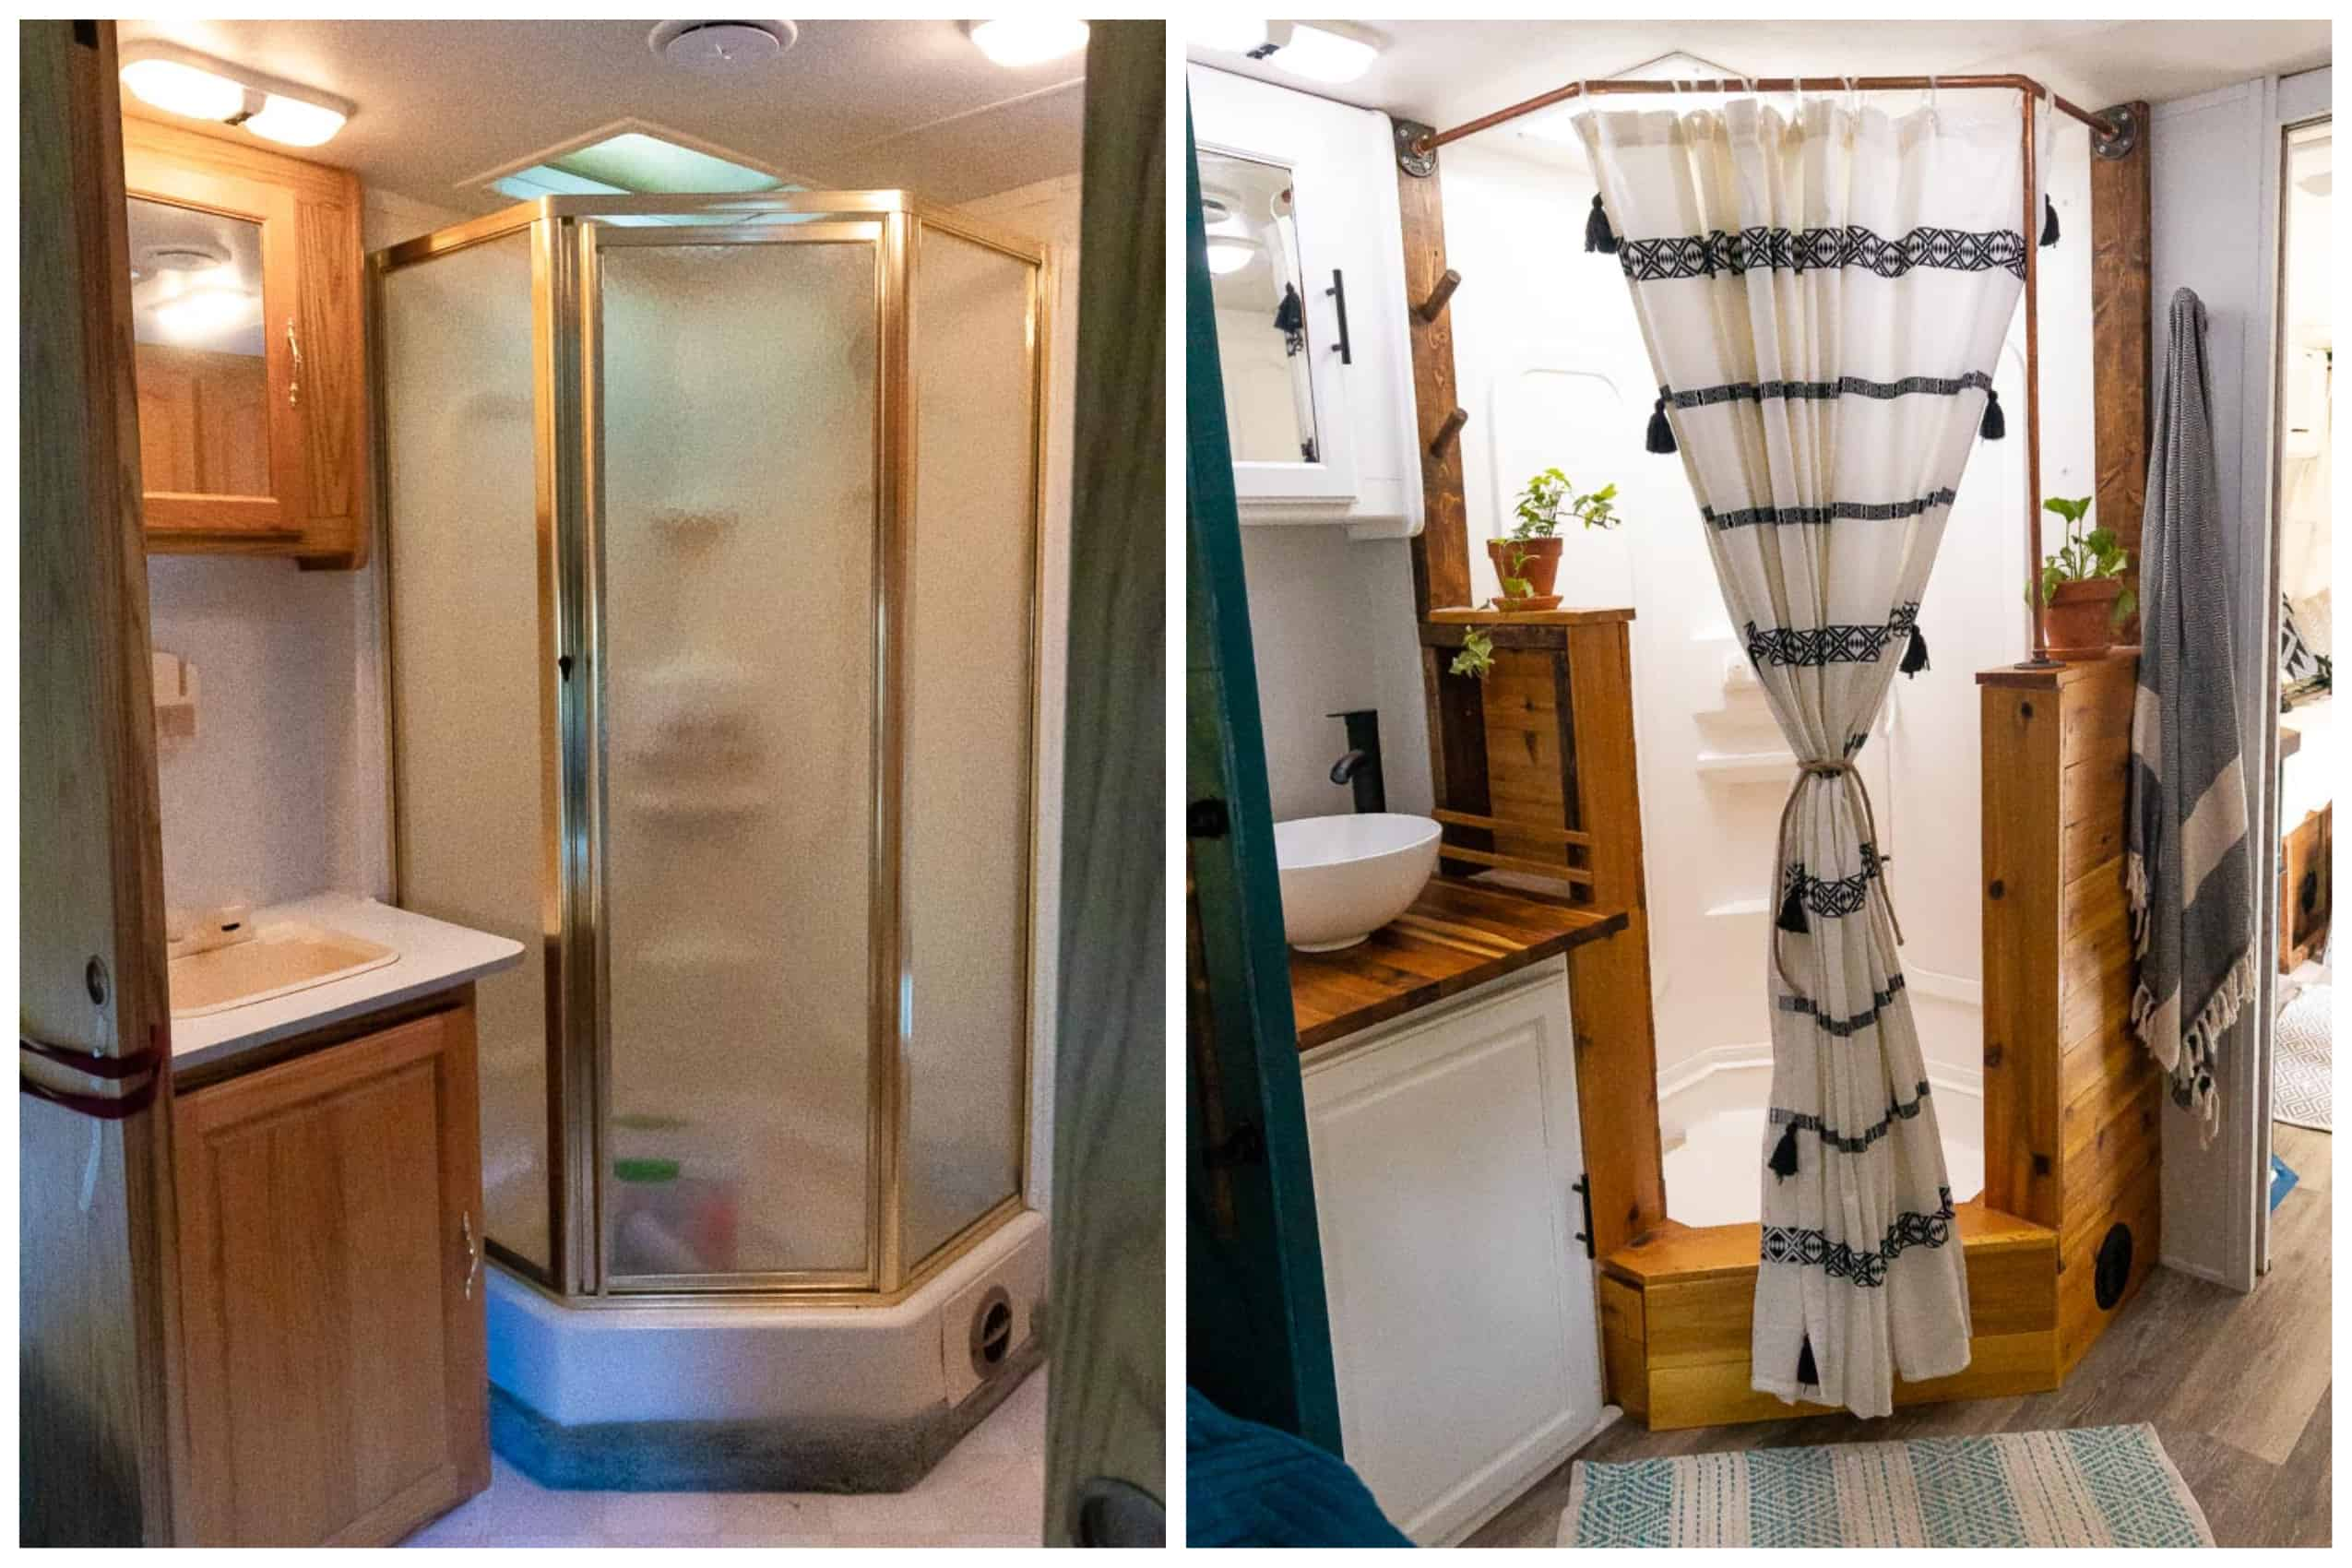 Before and After of RV bathroom and shower remodel